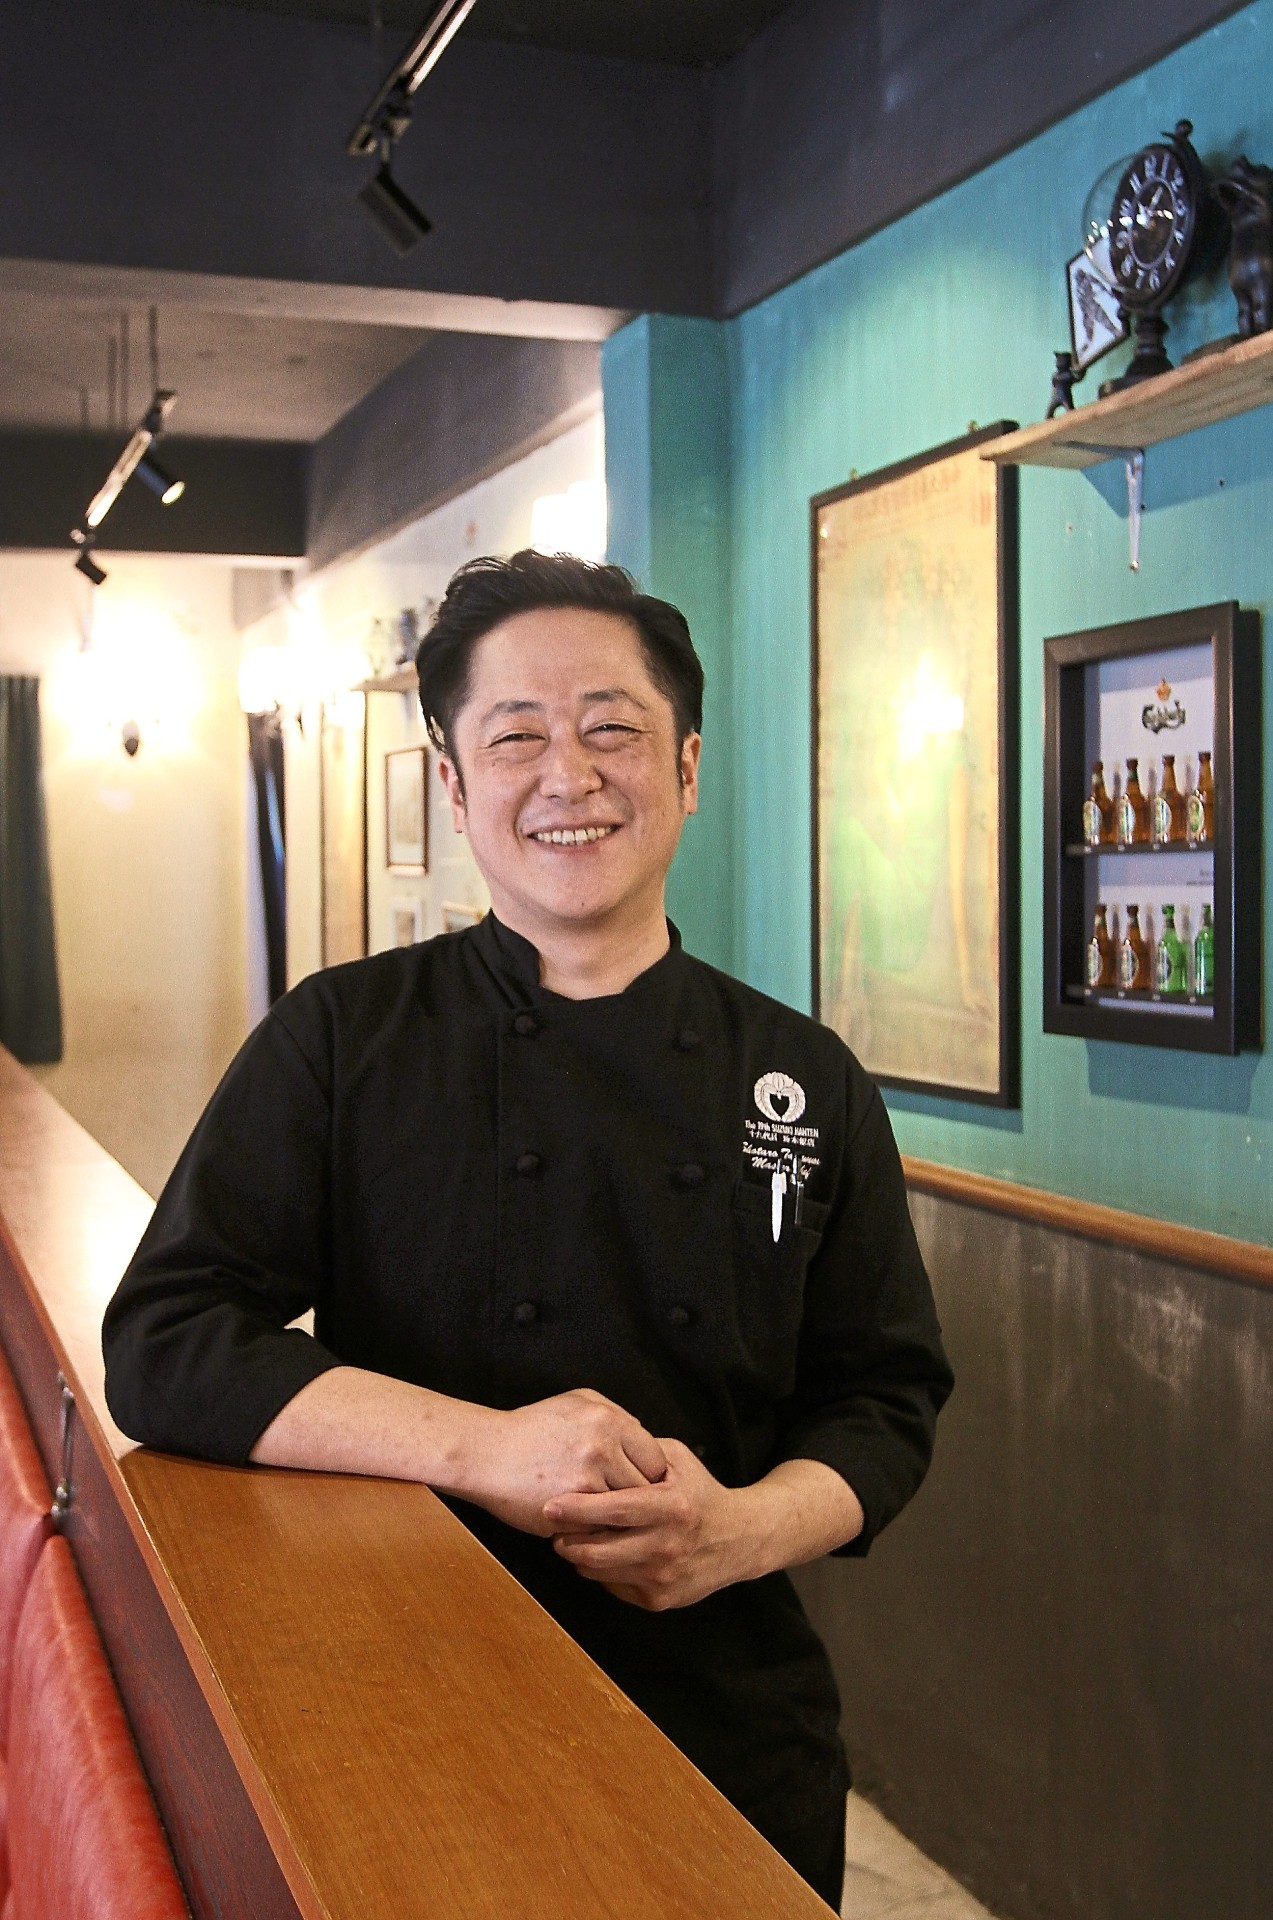 Takemura trained under celebrated Iron Chef Chen Kenichi in Japan and is now making his mark in Kuala Lumpur.